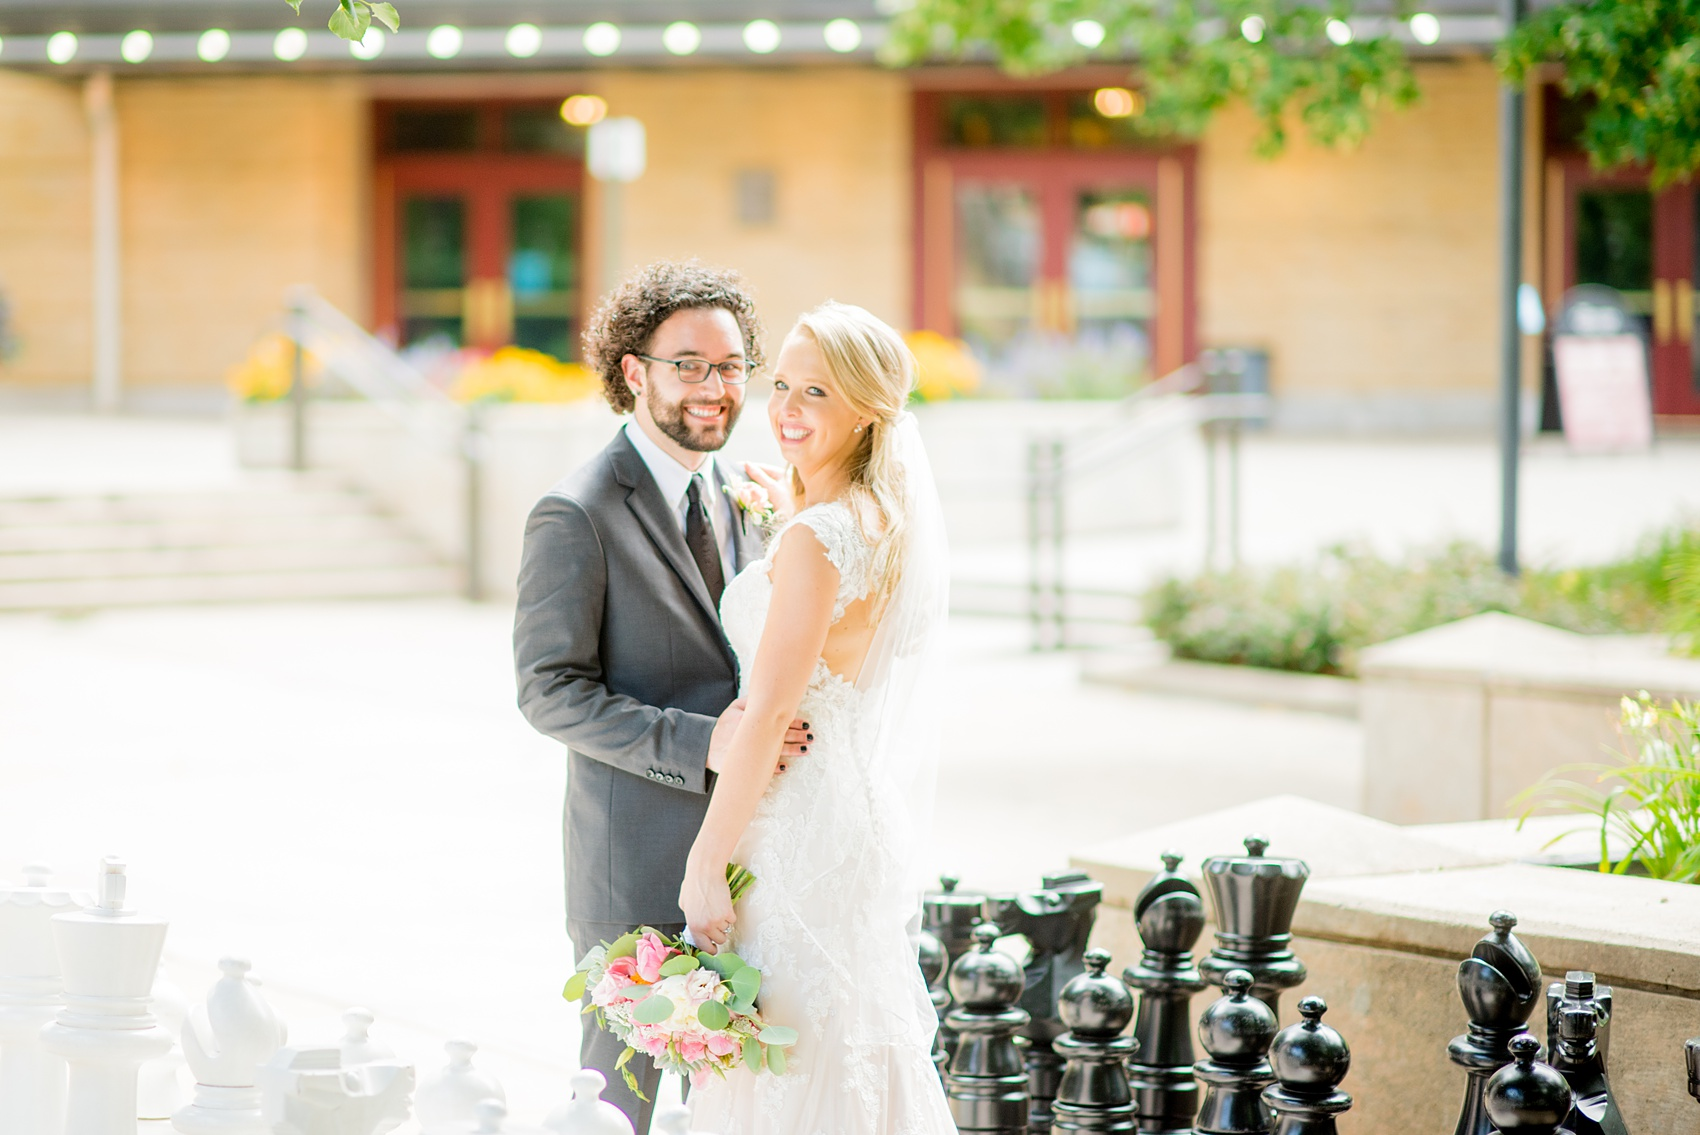 Mikkel Paige Photography photos from a wedding in Durham, North Carolina. Picture of the bride and groom on a giant chess board.